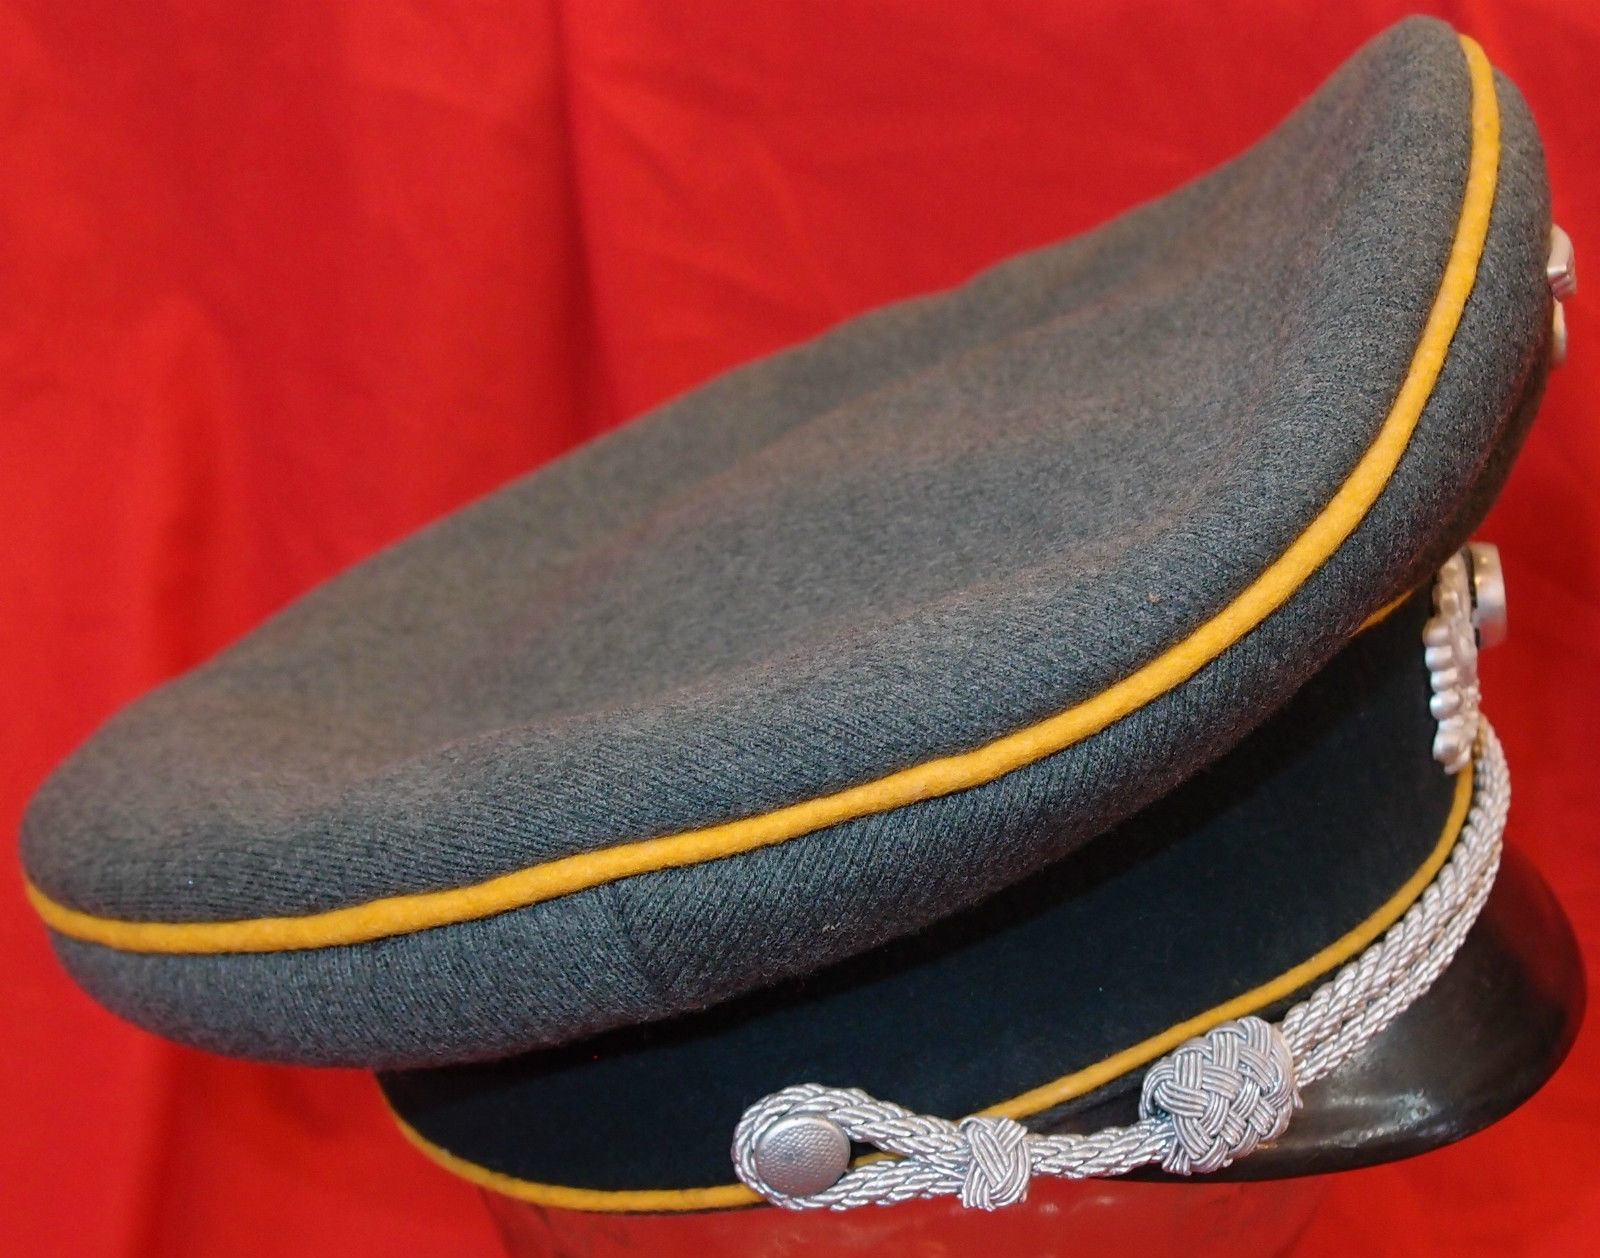 WW2 NAZI GERMANY ARMY CAVALRY OFFICER PEAKED CAP HAT